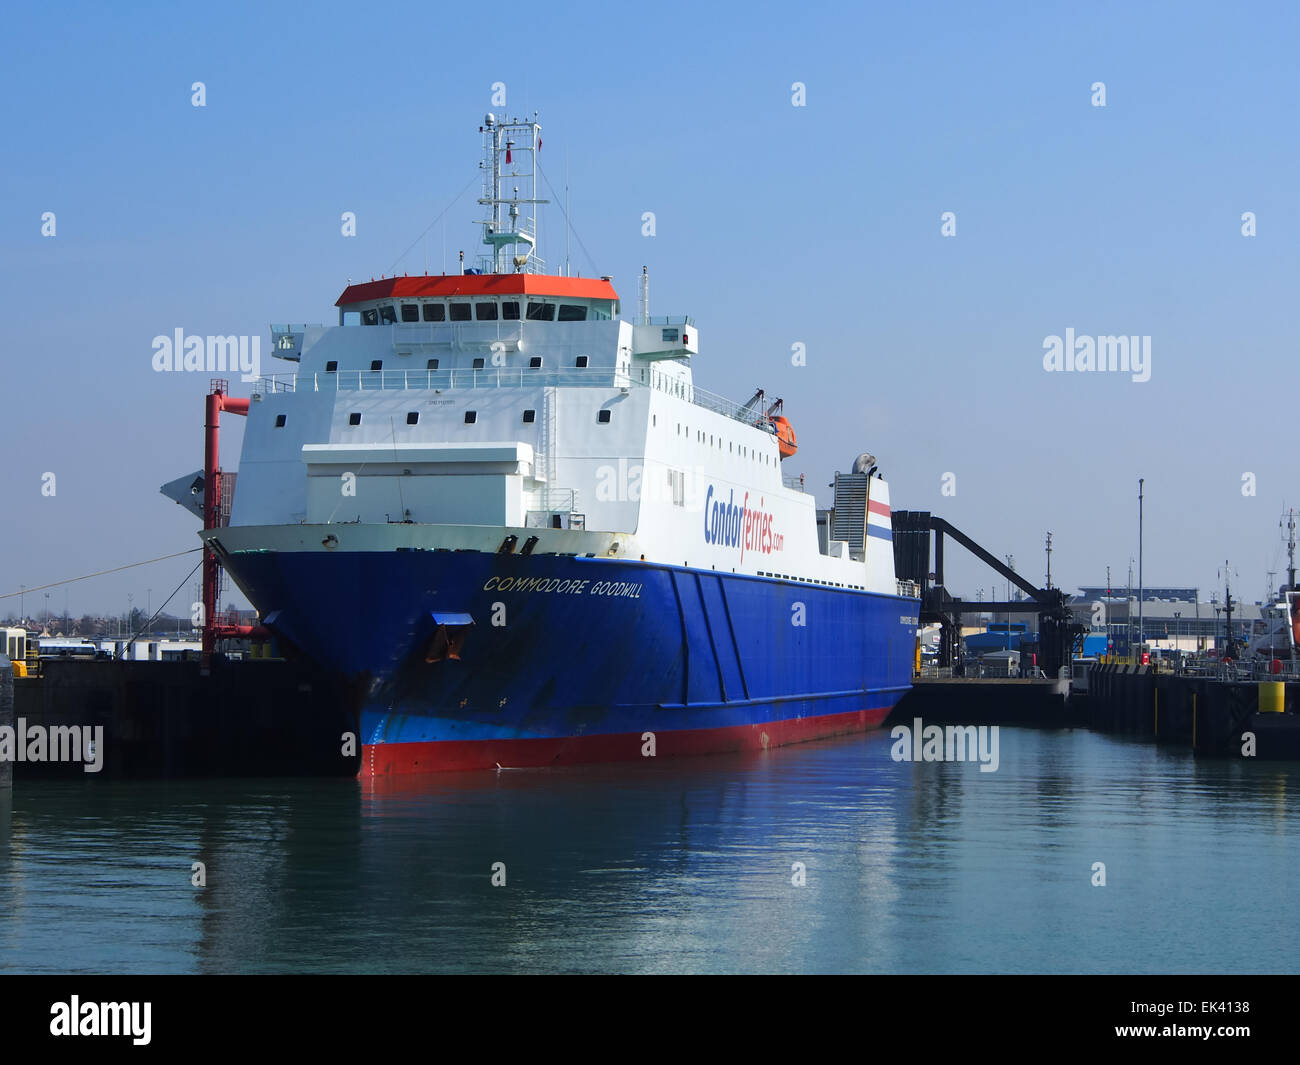 The Condor Ferries ship Commodore Goodwill, berthed in Portsmouth international Port, Hampshire England - Stock Image